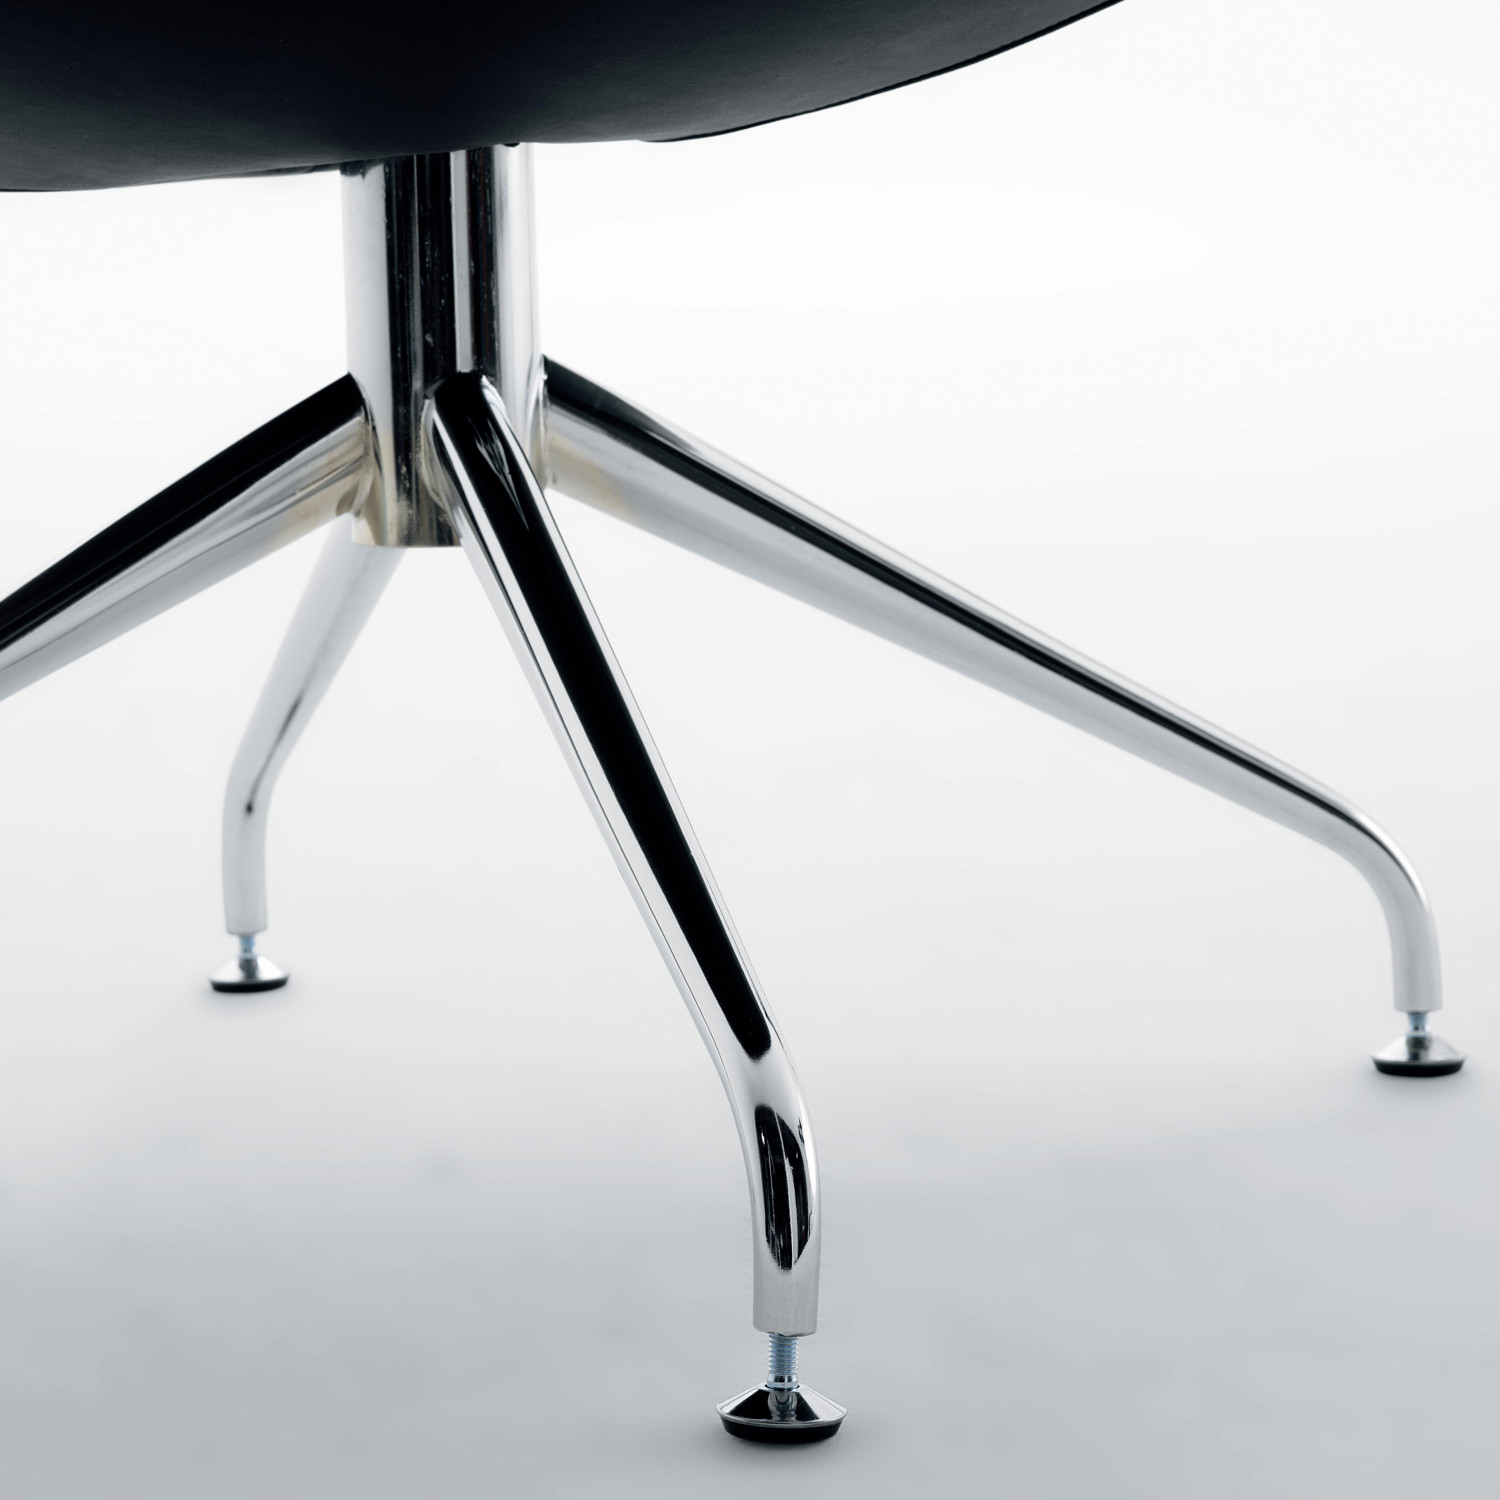 Mya Chair 4-Star base detail